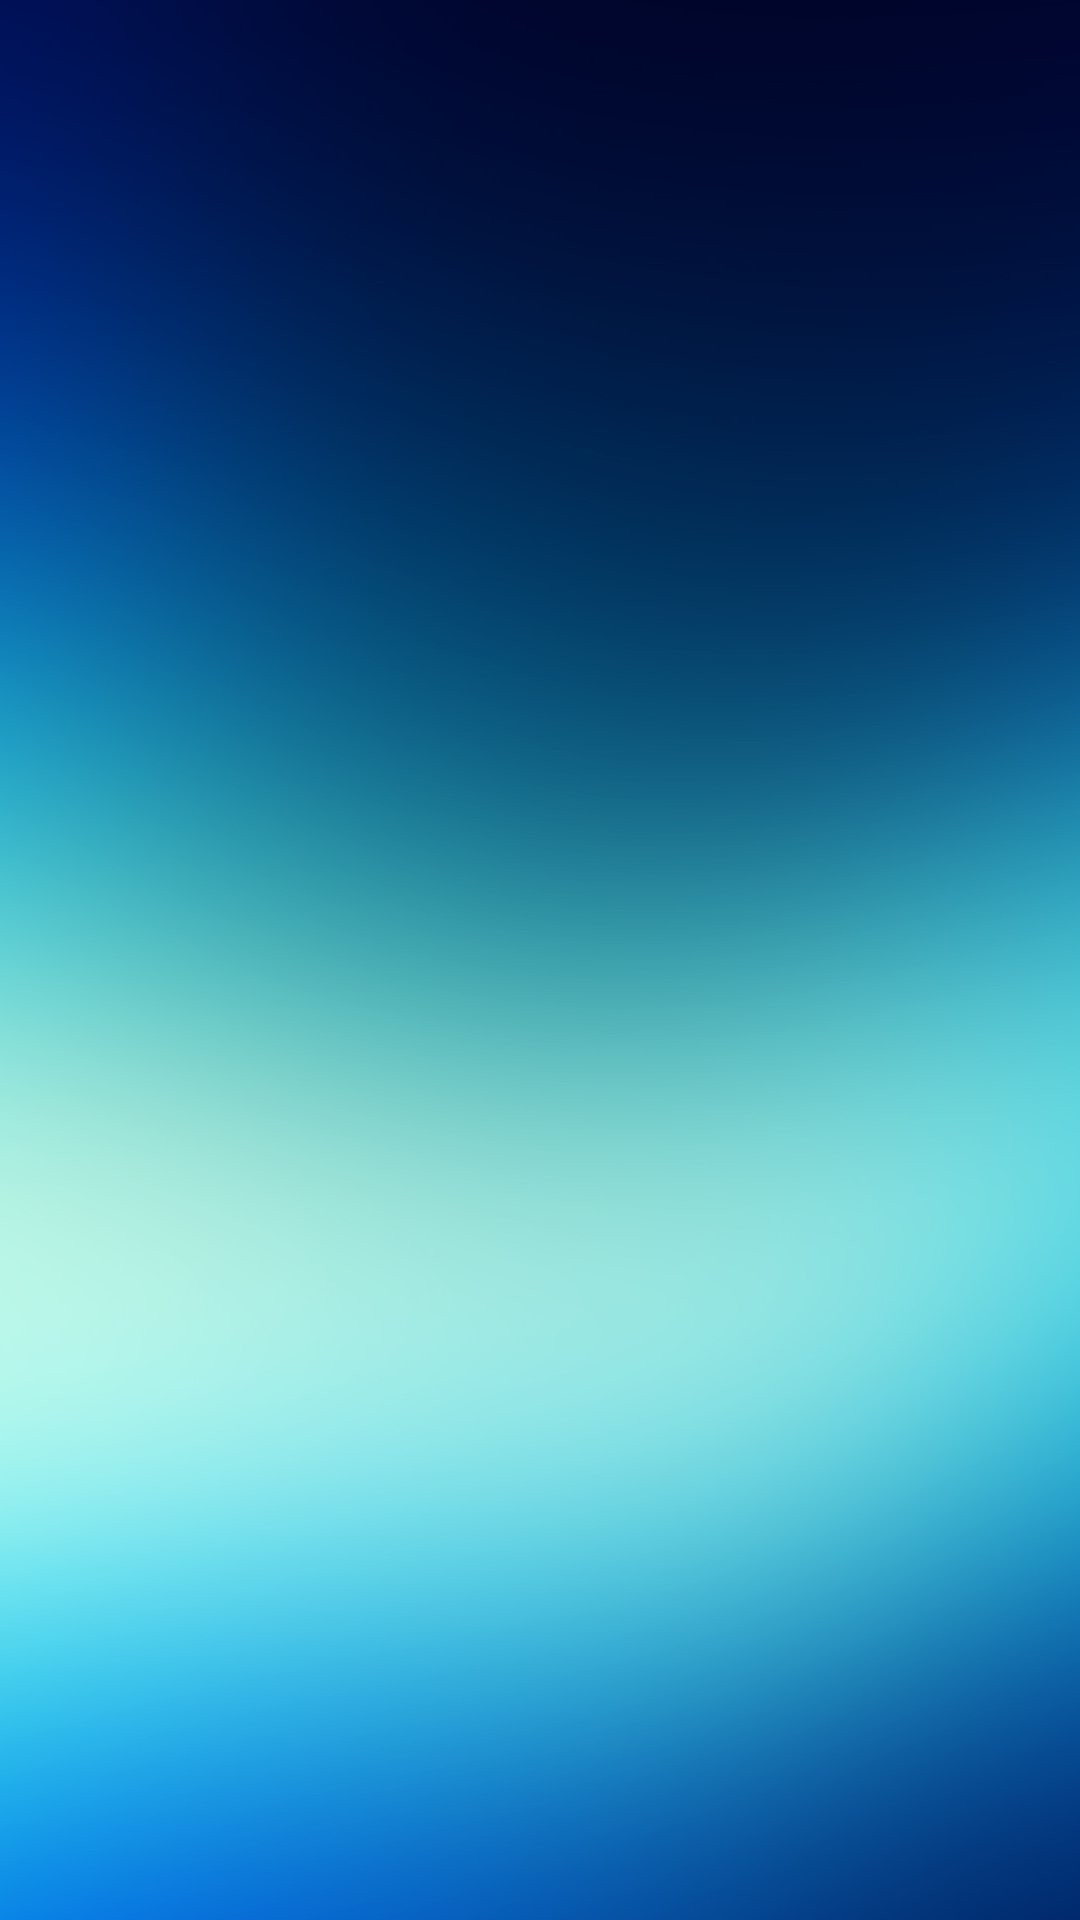 Ombre background ·① Download free amazing HD wallpapers ...